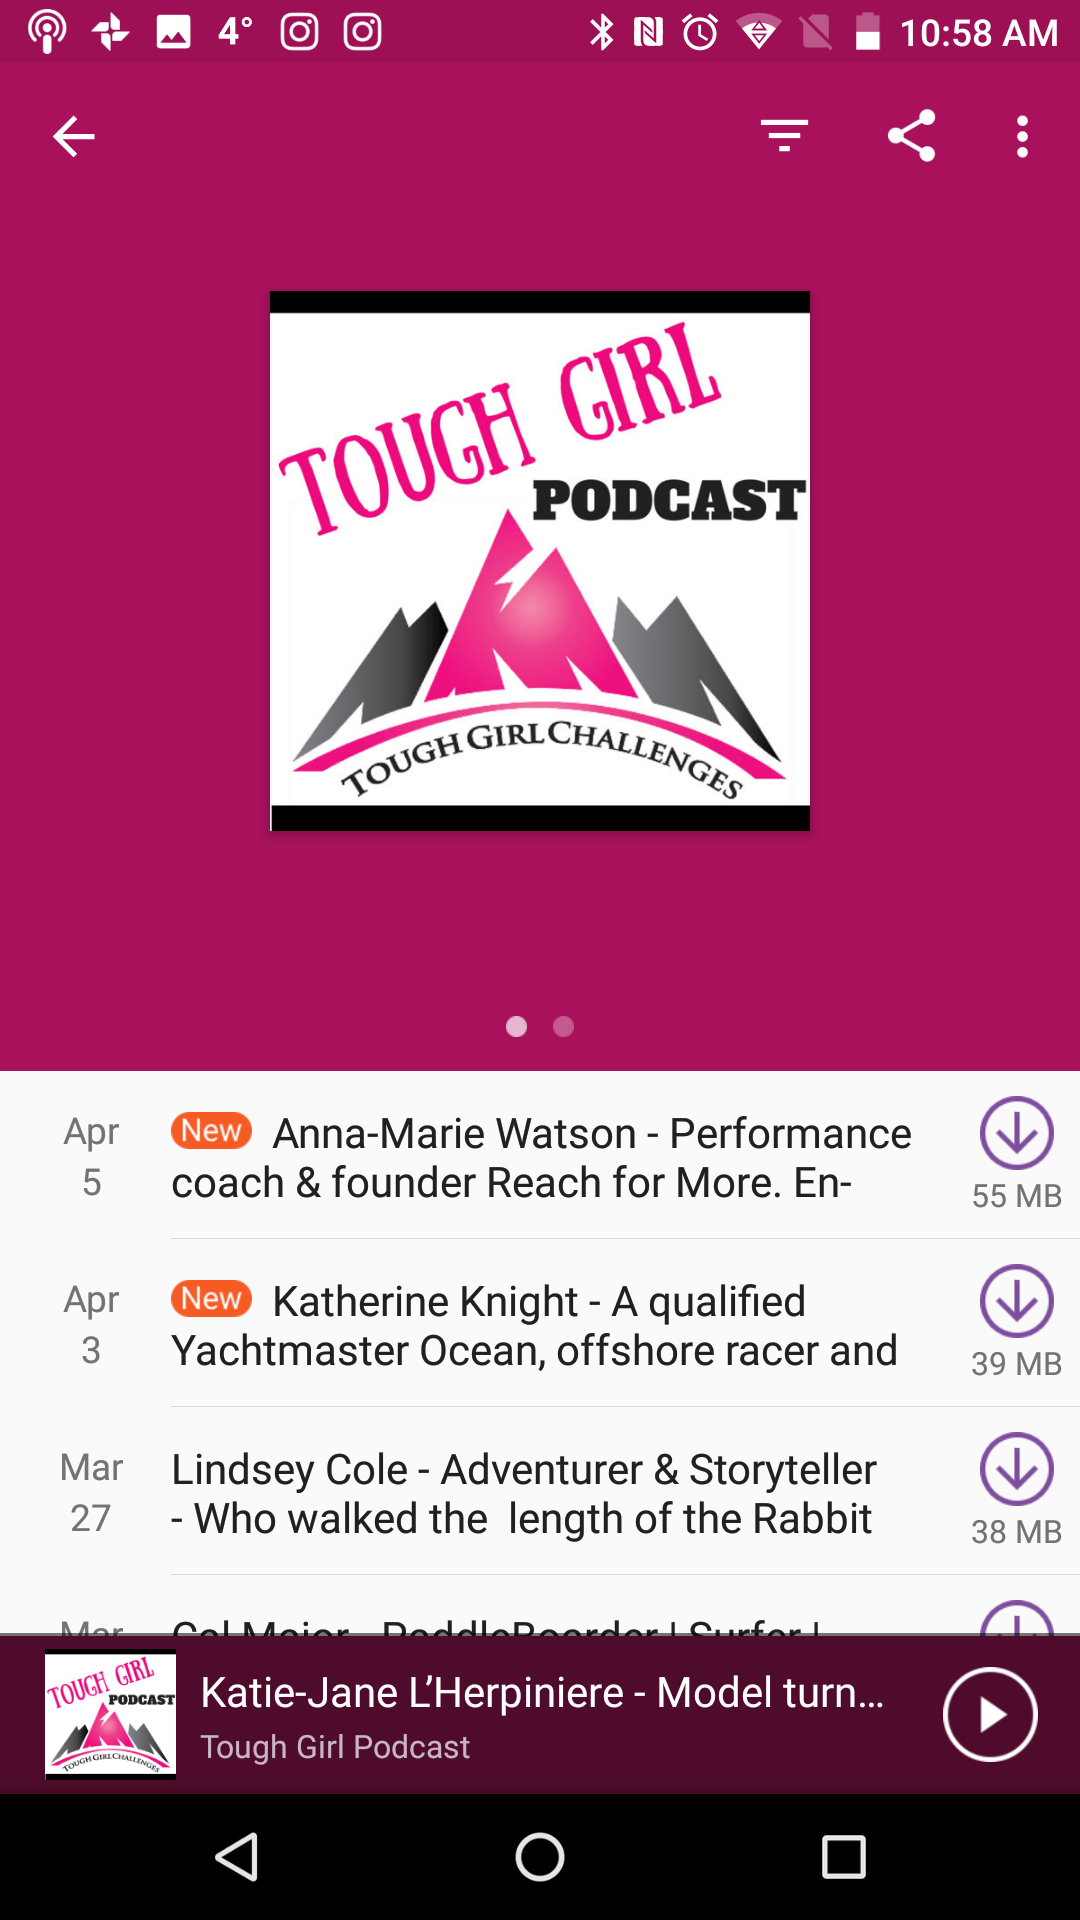 Tough Girl Podcast March 2018